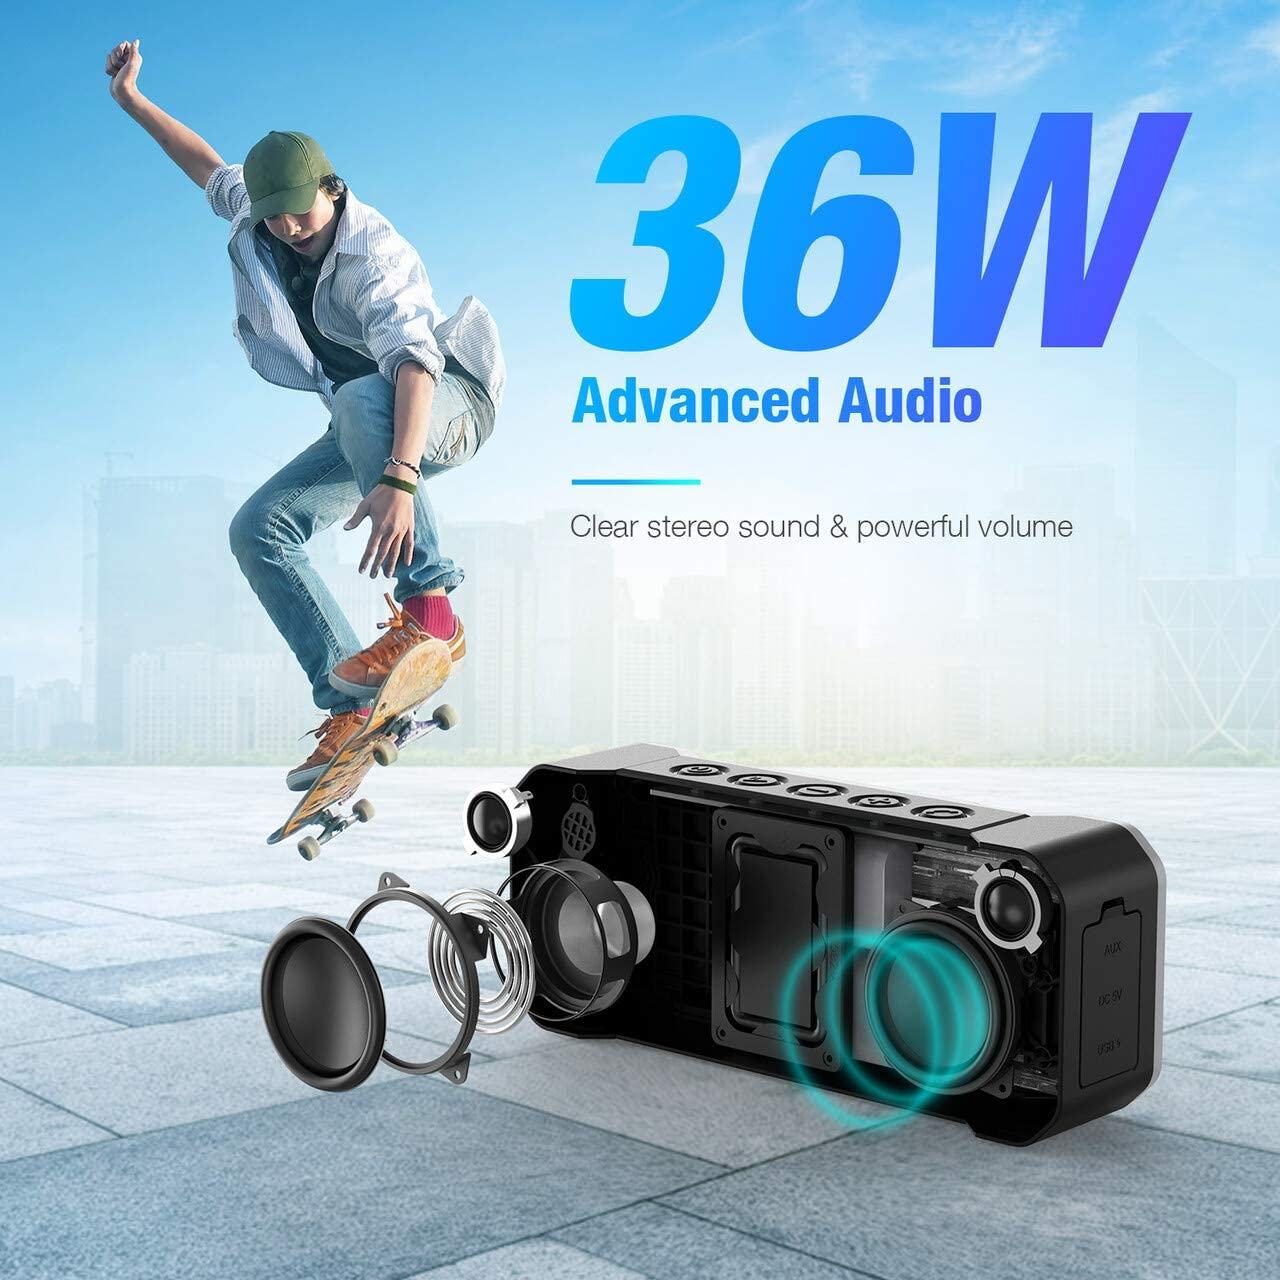 Beach MusicFly Portable Wireless Bluetooth Speakers IPX7 Waterproof Party Shower Force 36W with 4 Driver Enhanced Bass Bluetooth 4.2 For Travel Poweradd Bluetooth Speaker